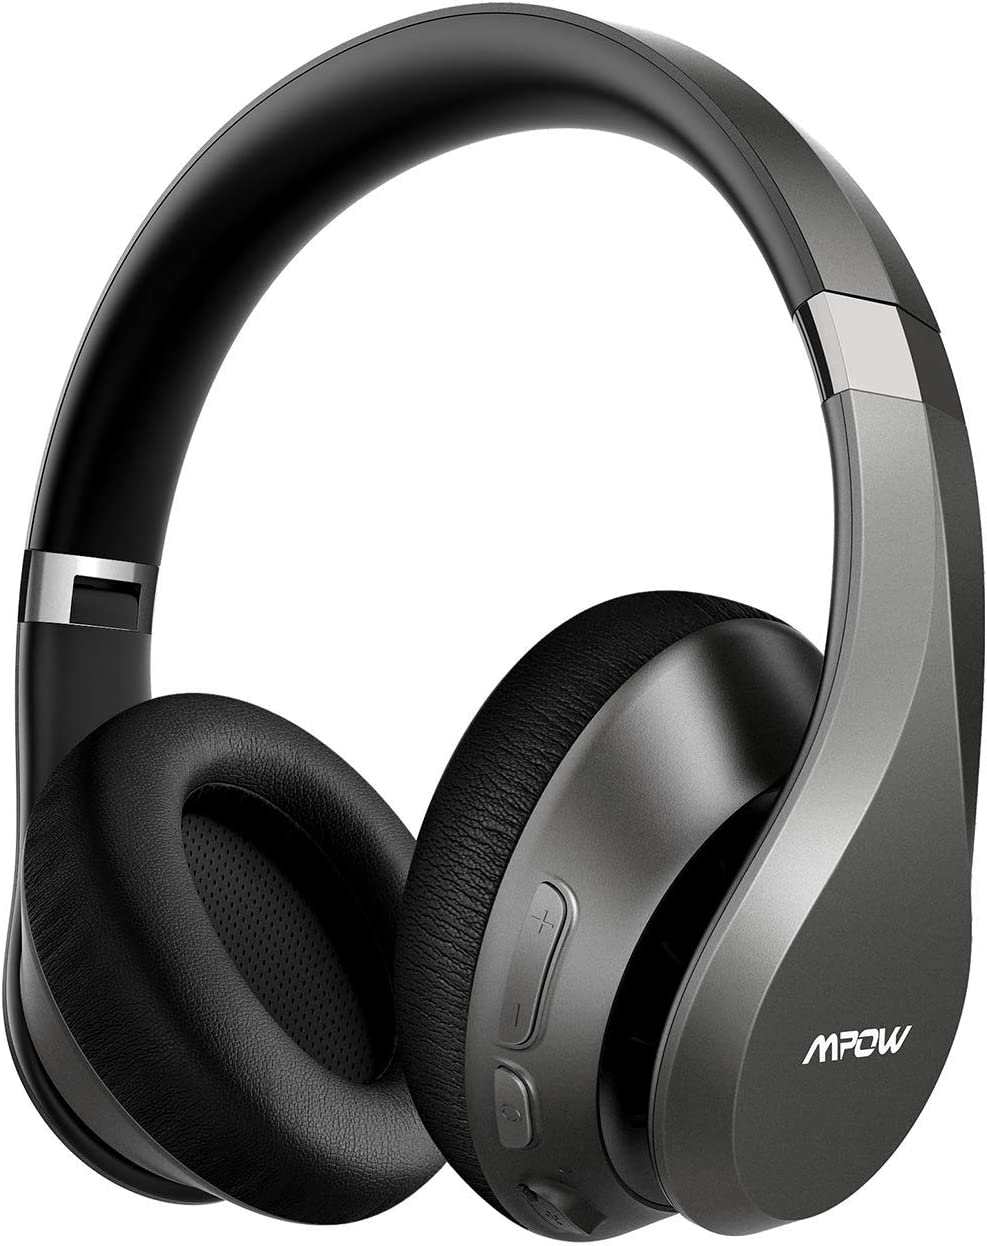 Mpow H20 Upgraded 059 Bluetooth Headphones Over Ear, Wireless Headphones with Latest CVC 8.0 Mic, 60 Hours Playtime Wireless Hi-Fi Deep Bass Headphones, Over Ear Headphones with Soft Earmuff